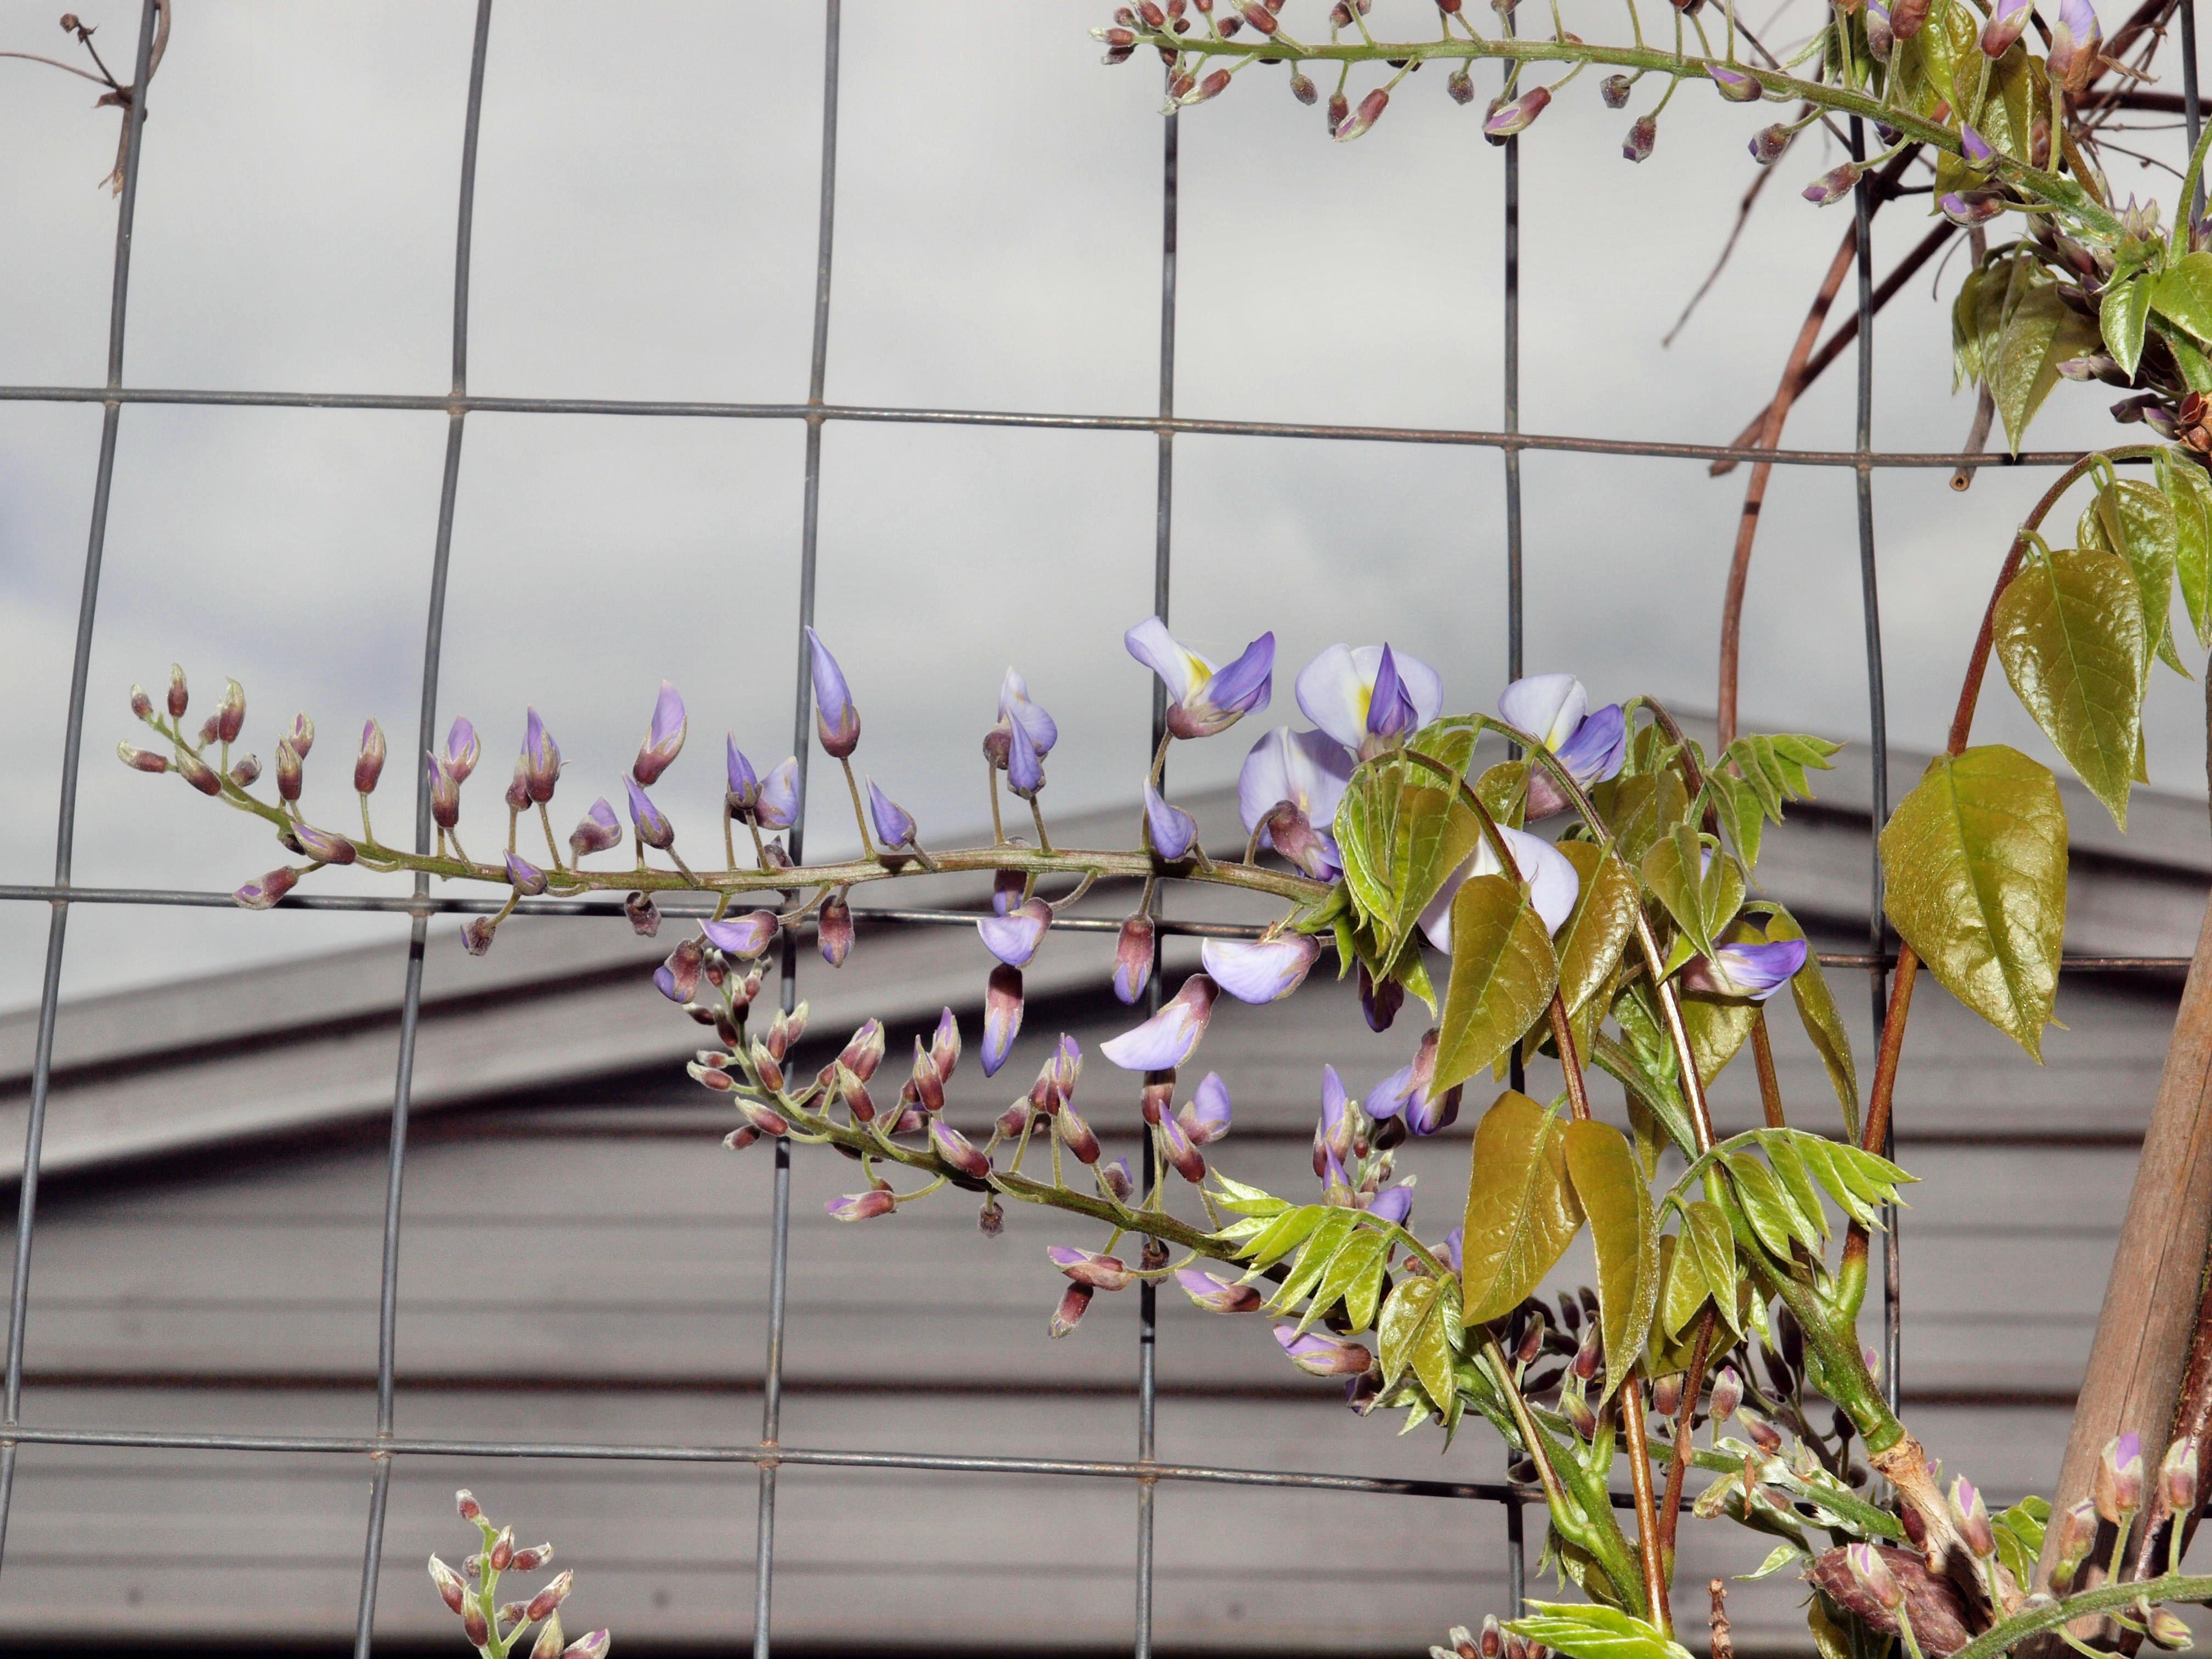 This should be Wisteria-japonica.jpeg.  Is it missing?